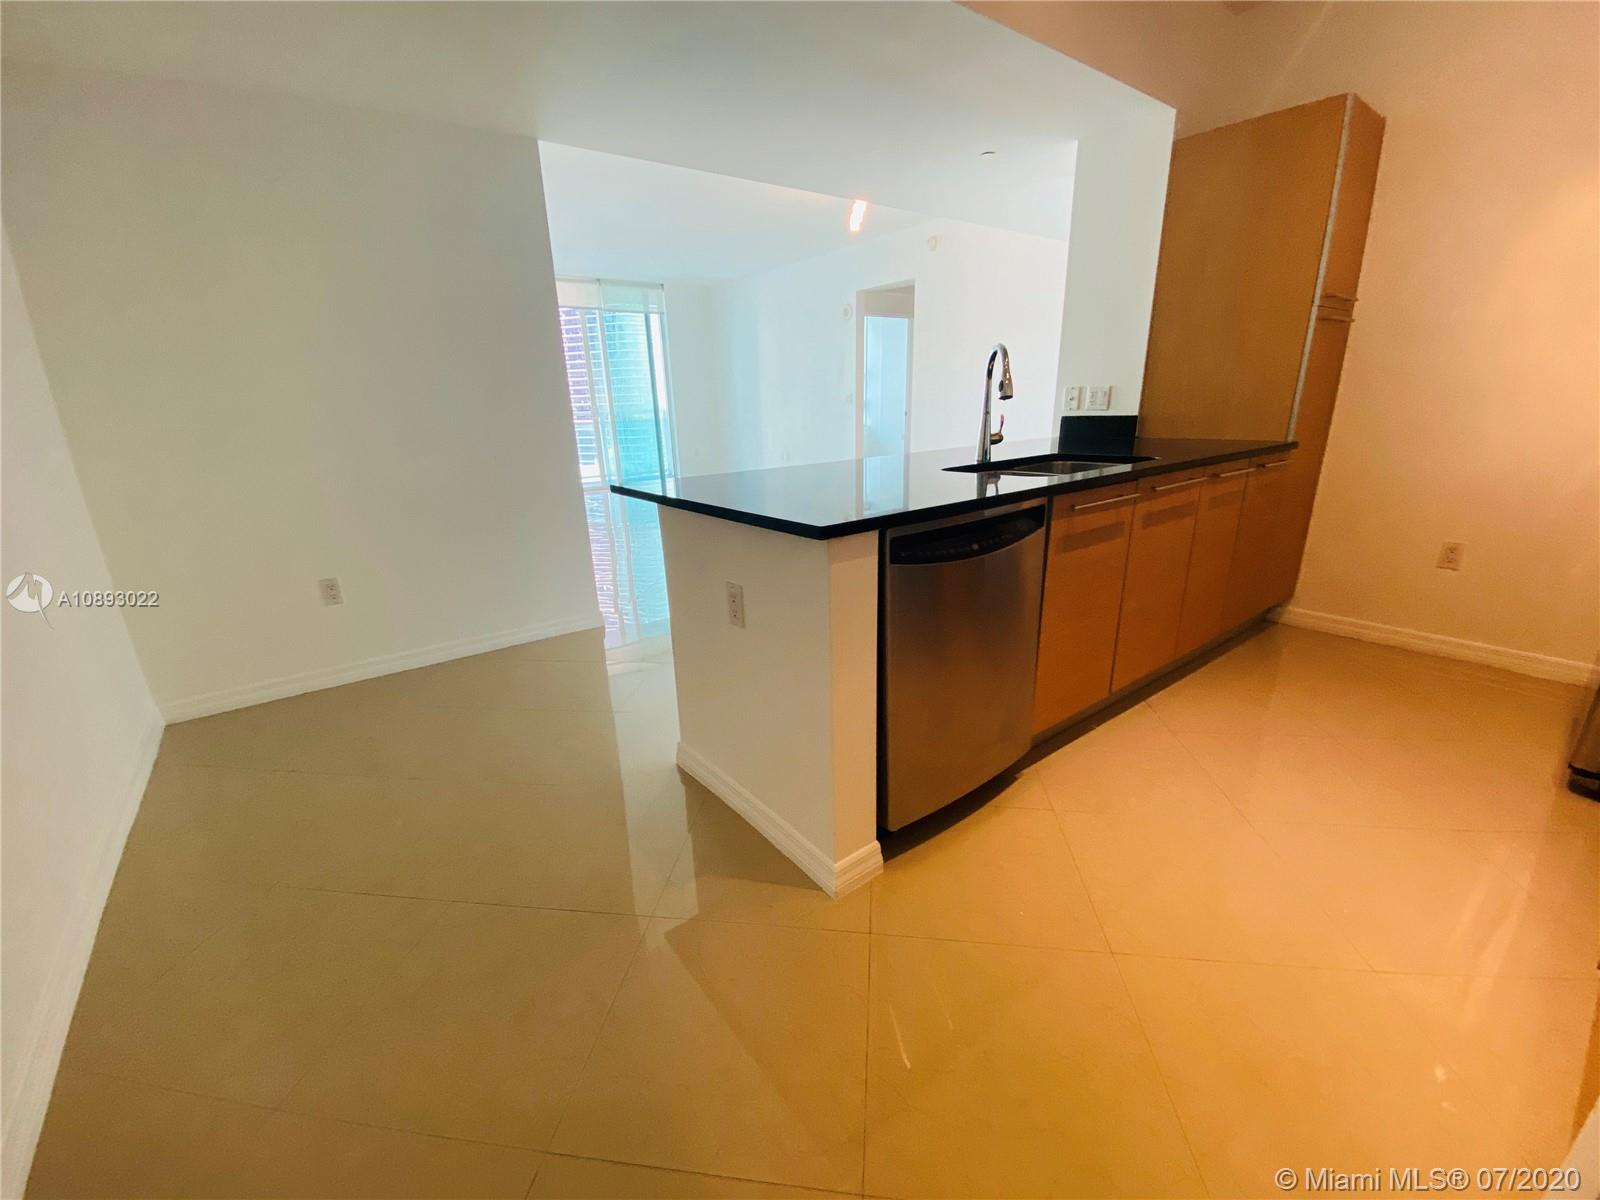 The Plaza on Brickell 2 #2105 - 951 Brickell Ave #2105, Miami, FL 33131